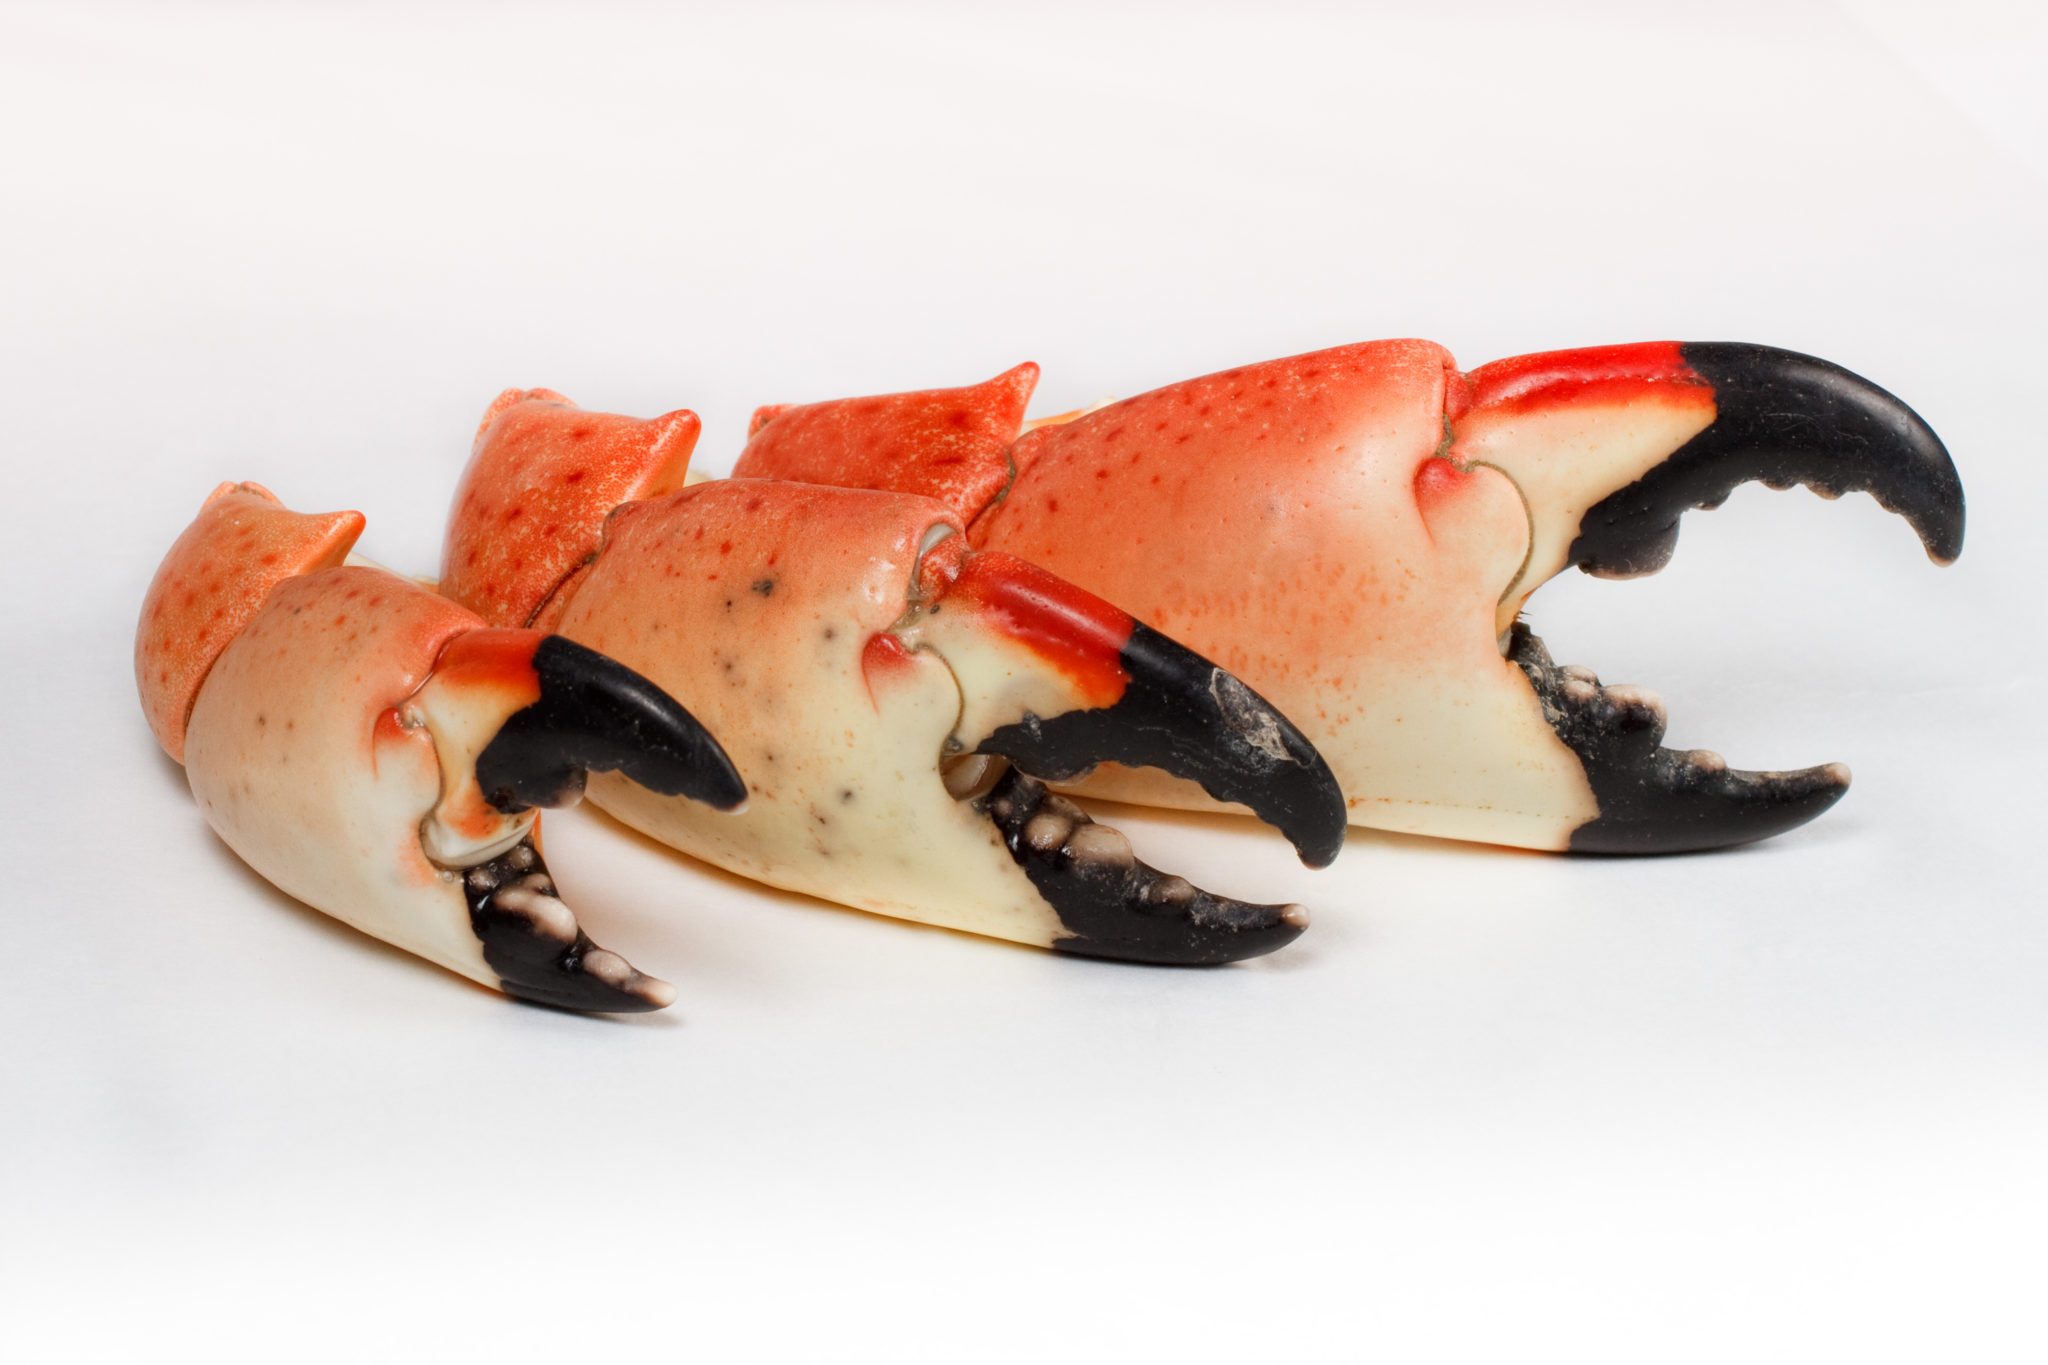 Florida Stone Crab Claws - Colossal - Carolina Meat & Fish Co.